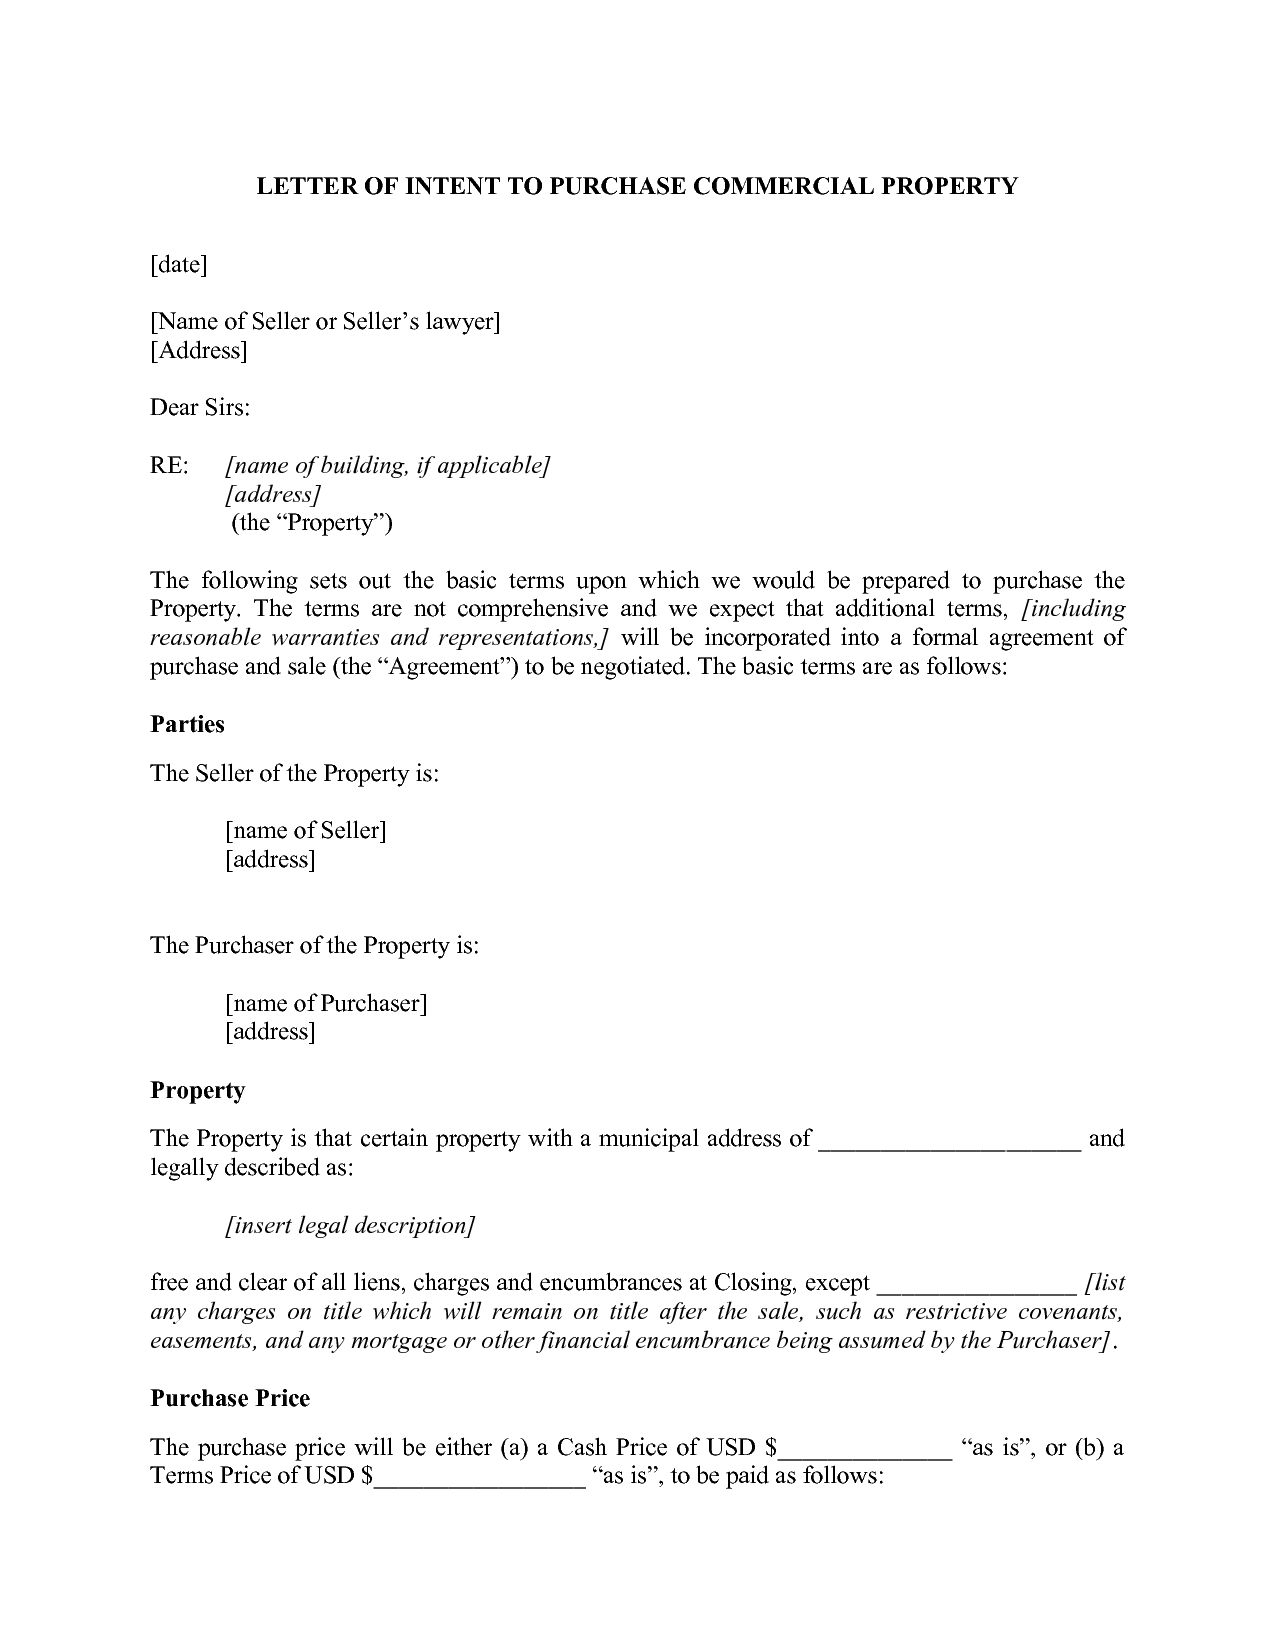 Commercial Real Estate Letter Of Intent to Purchase Template - Letter Intent to Purchase Real Property Philippines Estate Texas